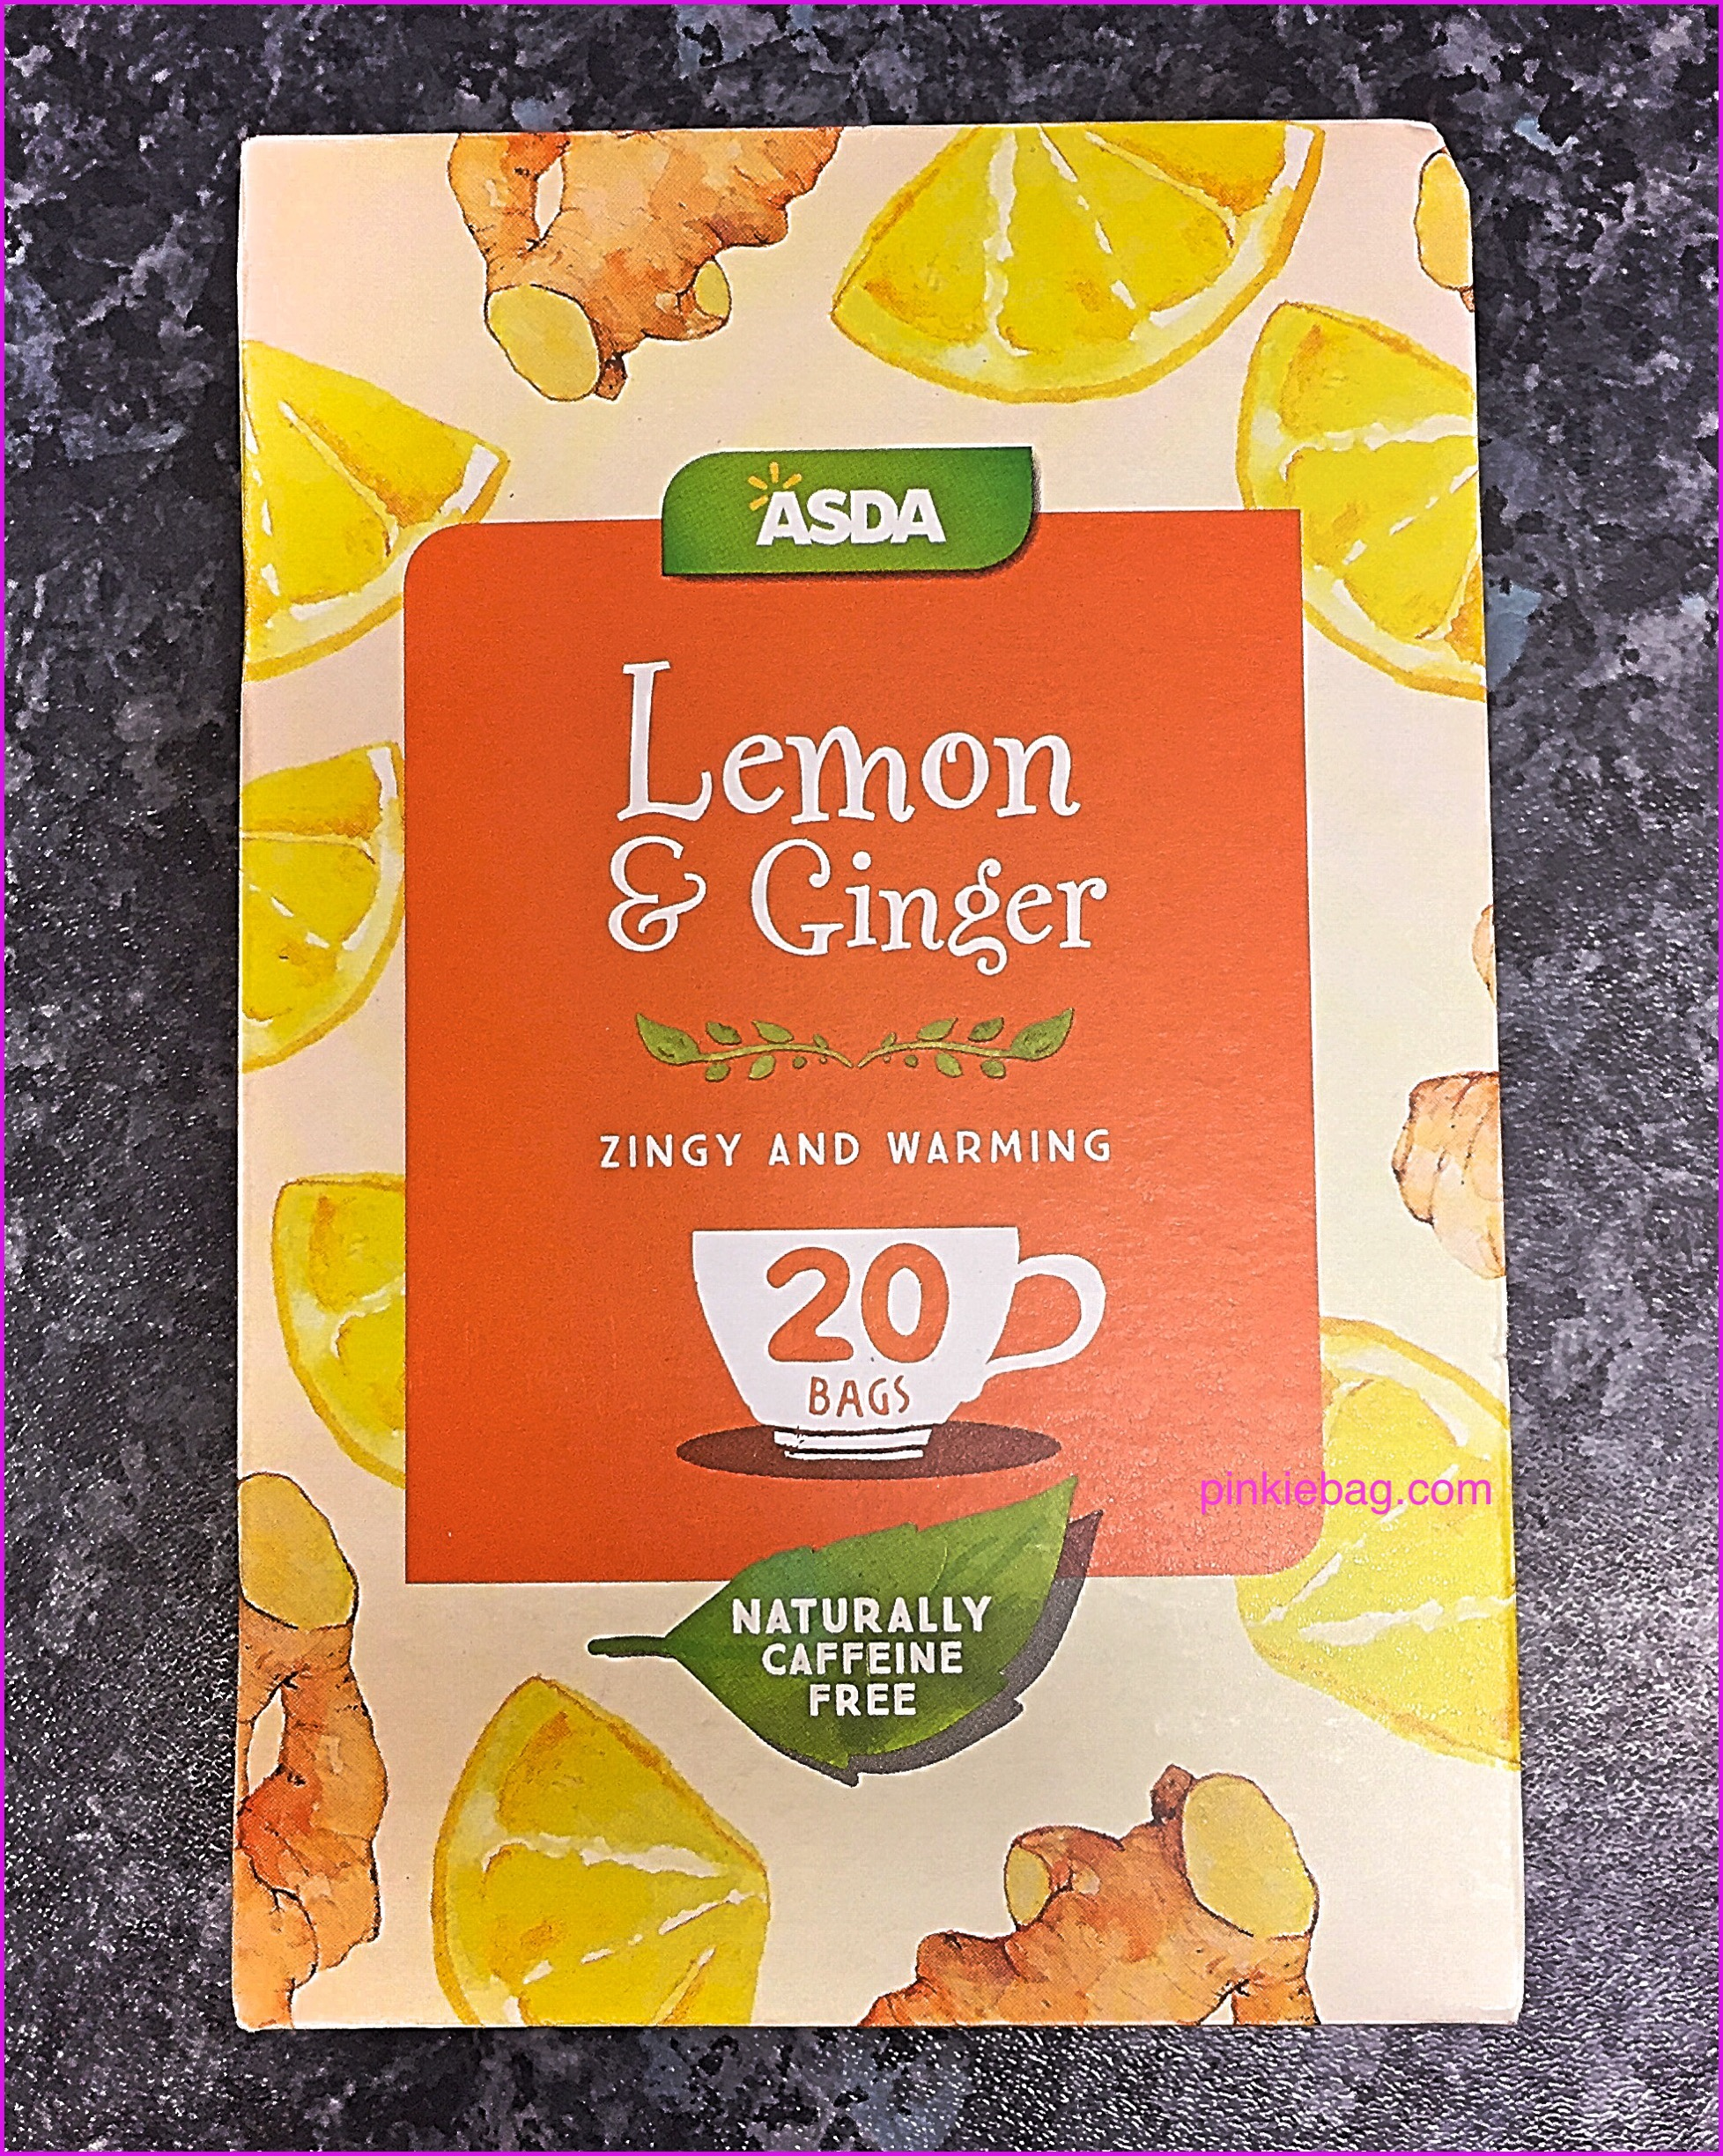 review of asda lemon and ginger tea pinkiebag. Black Bedroom Furniture Sets. Home Design Ideas